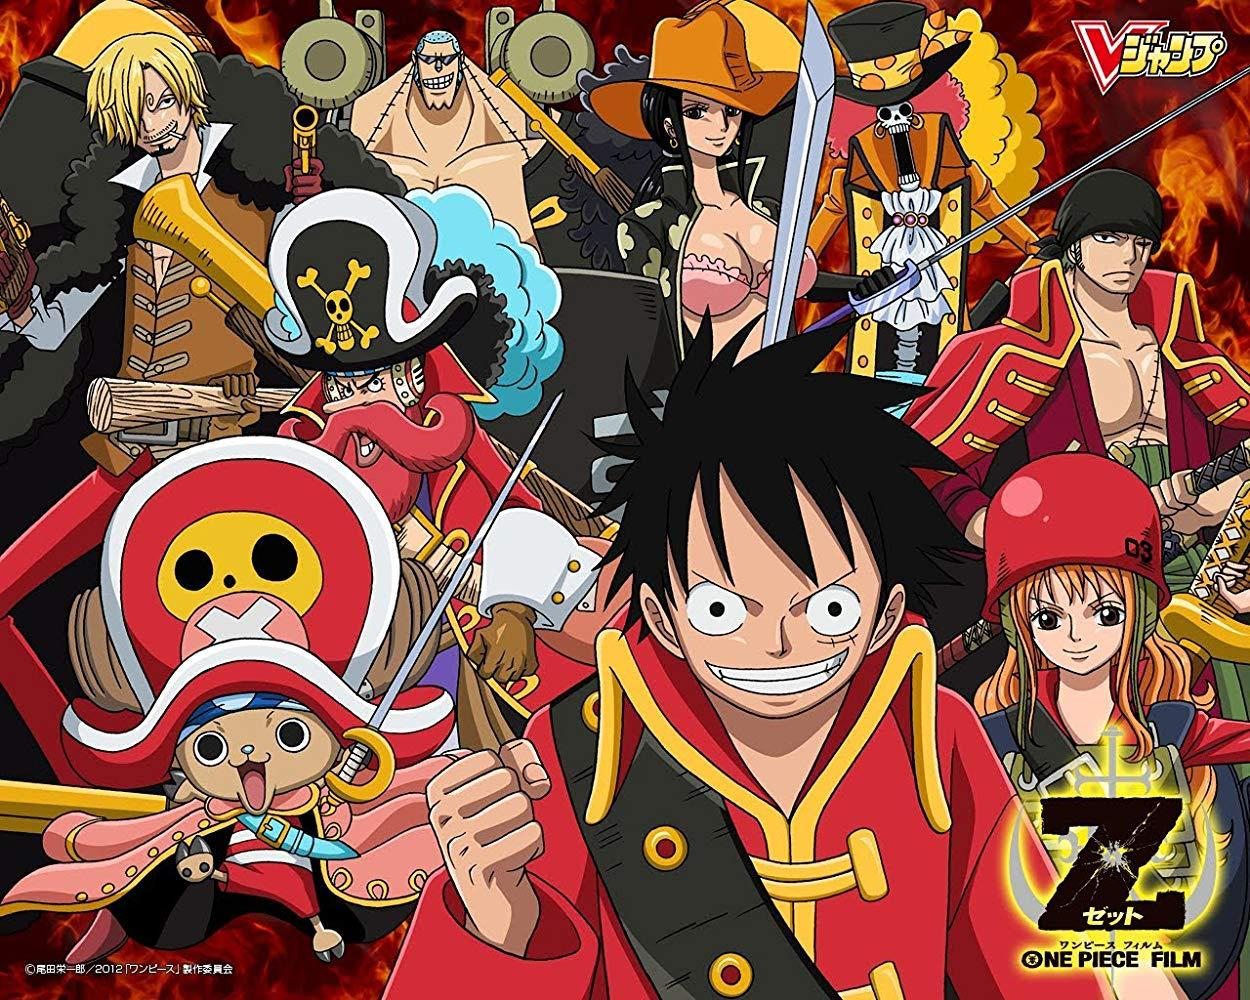 مشاهدة فيلم One Piece Film Z (2012) مترجم HD اون لاين